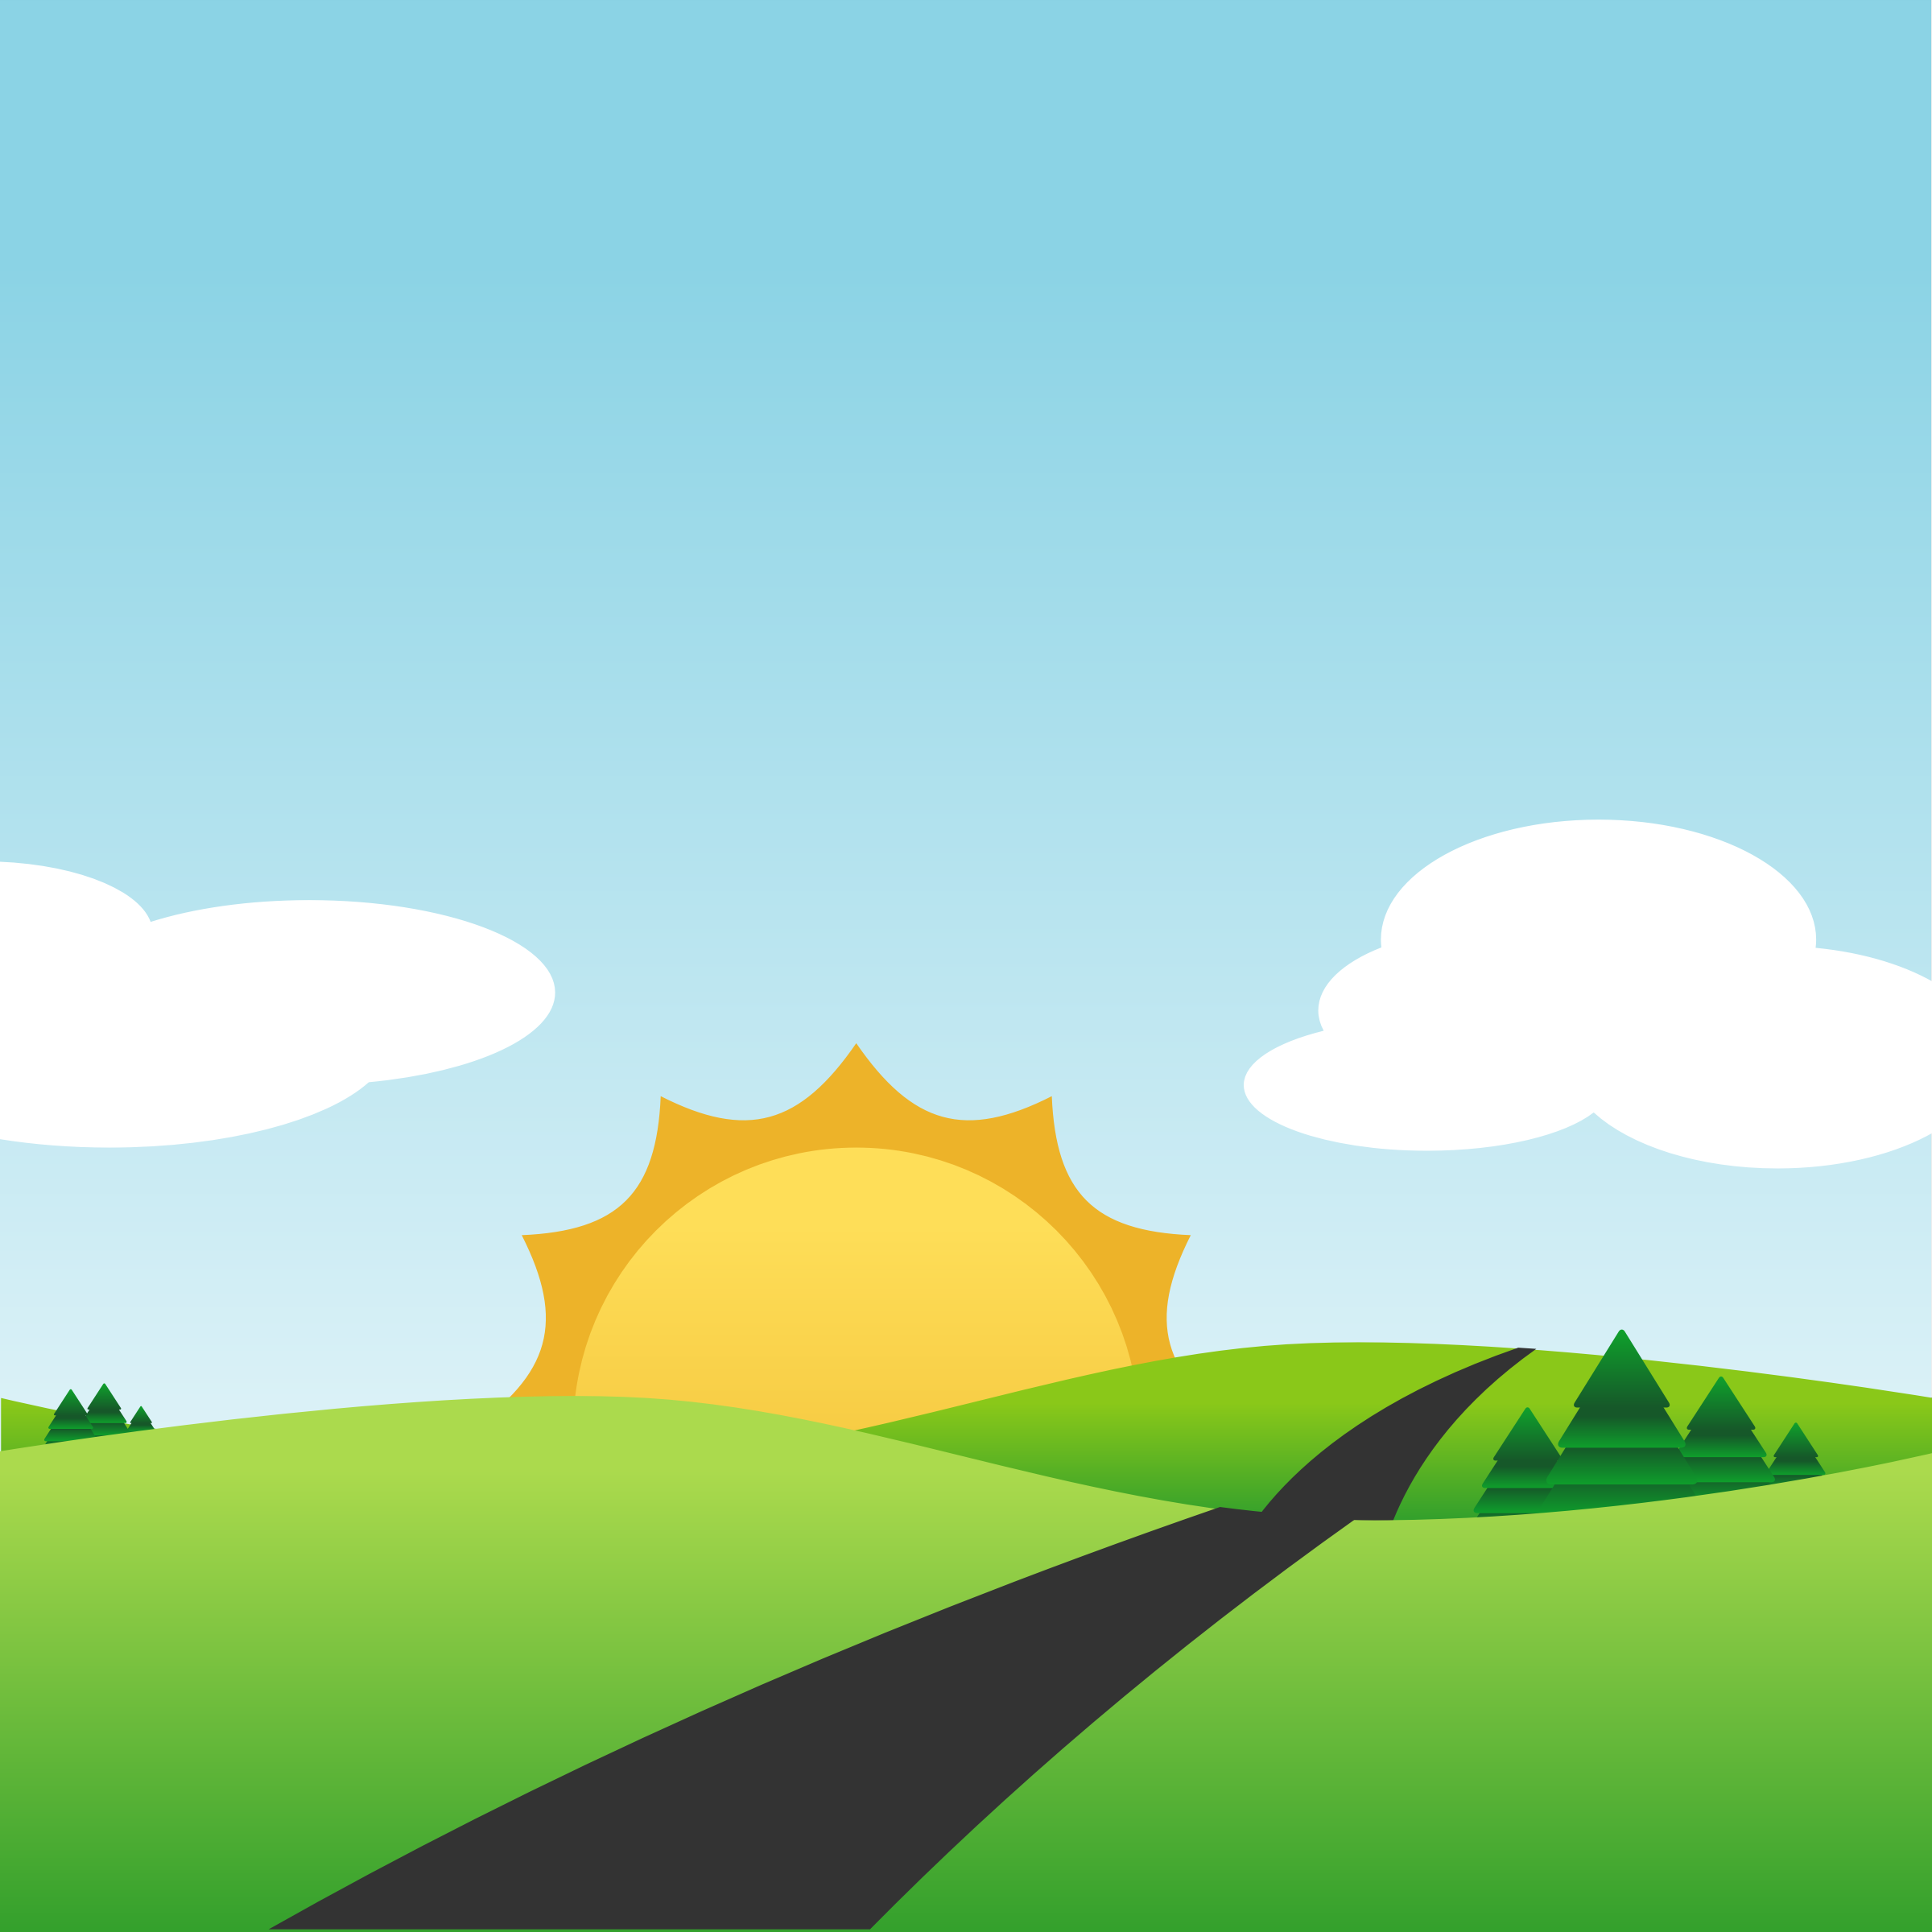 Free Simple Landscape Cliparts, Download Free Clip Art, Free.